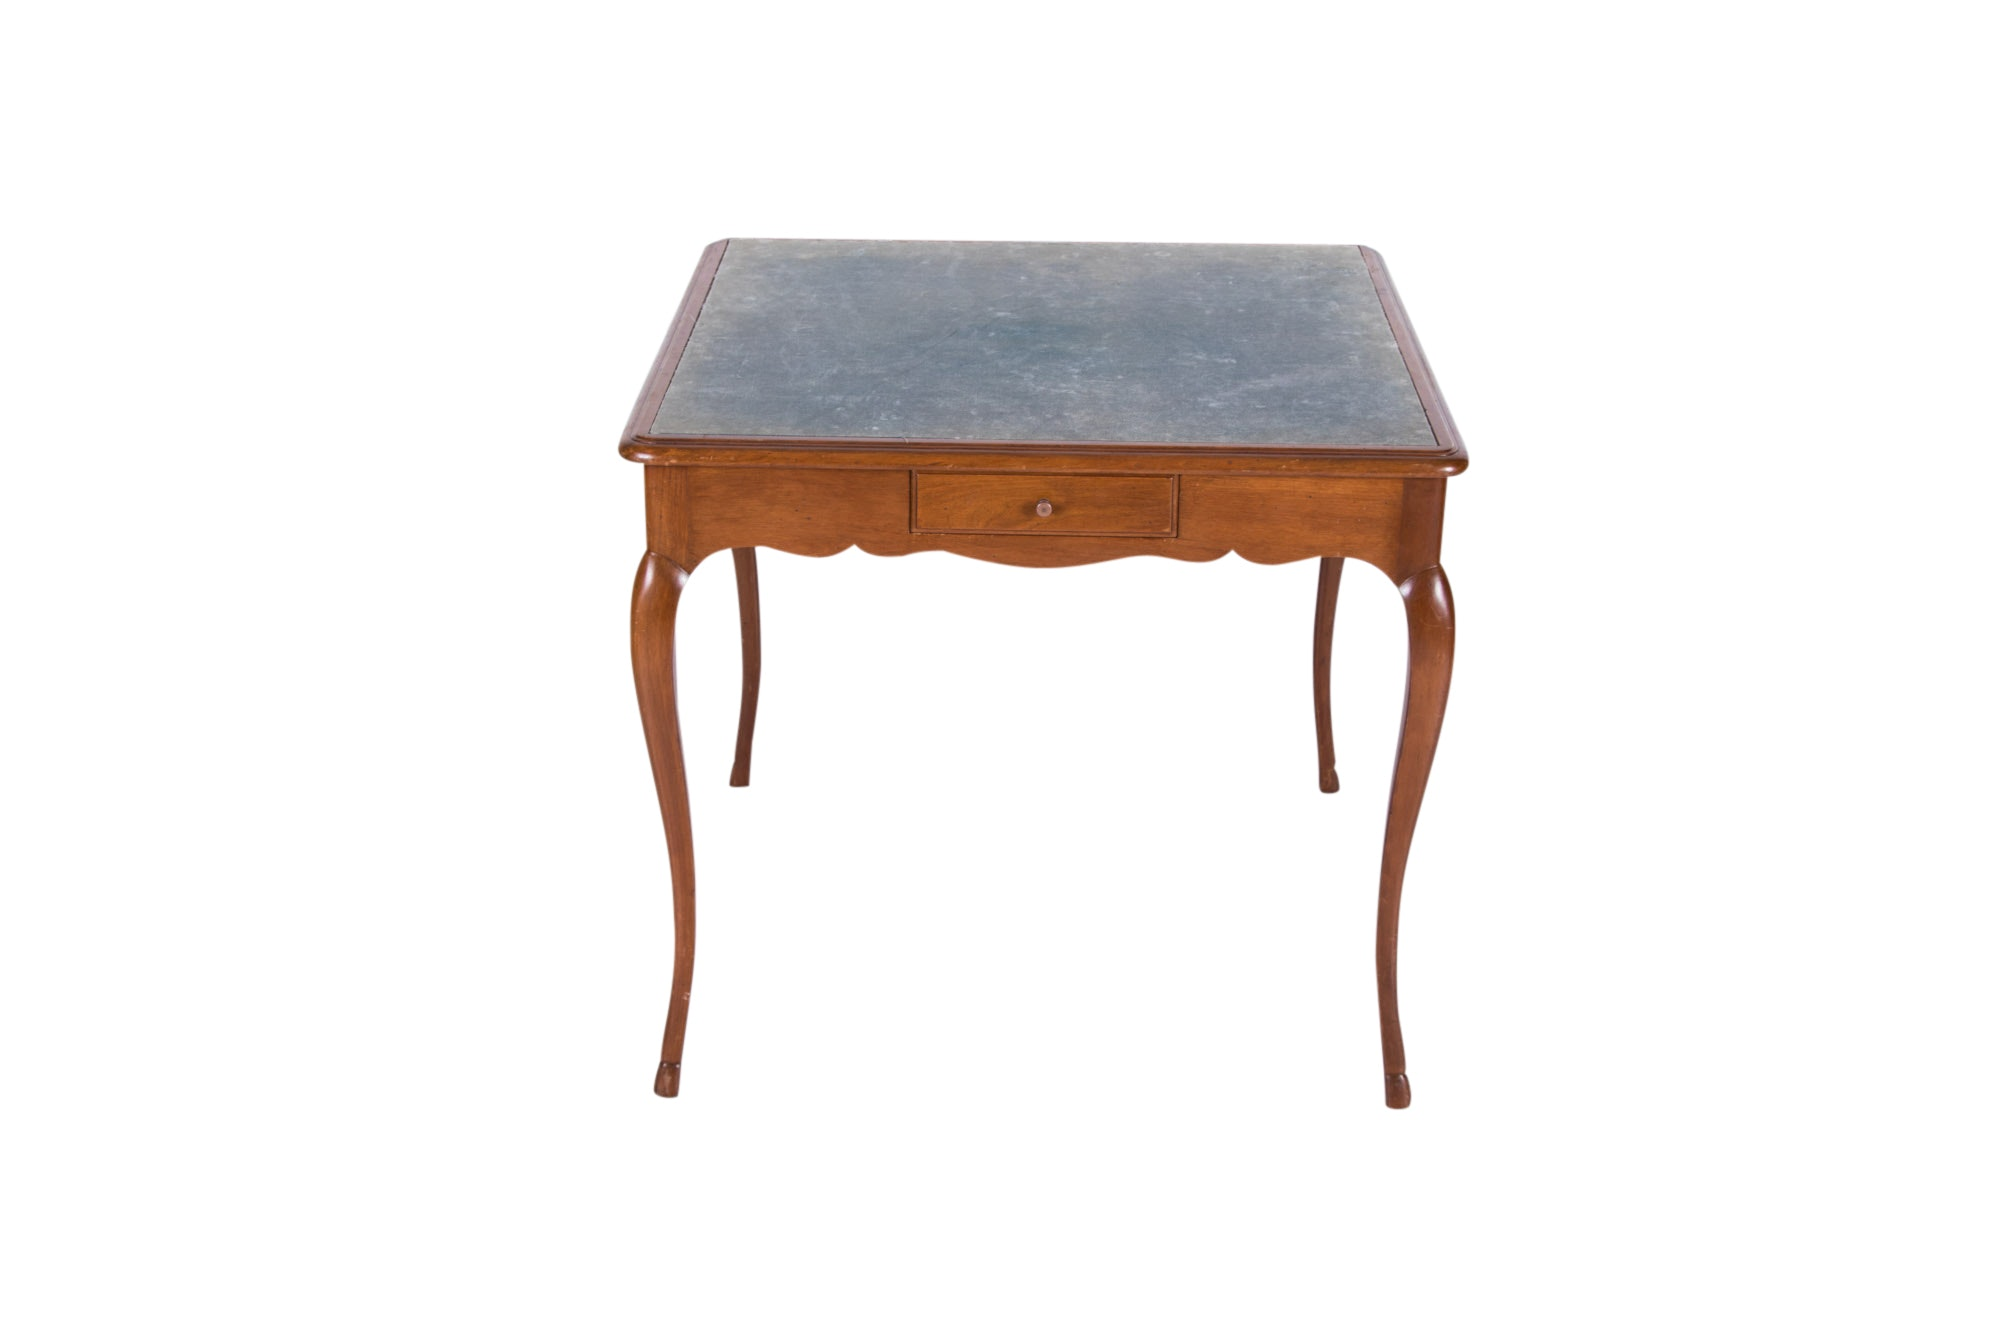 French Provincial Style Fruitwood Games Table, 20th Century